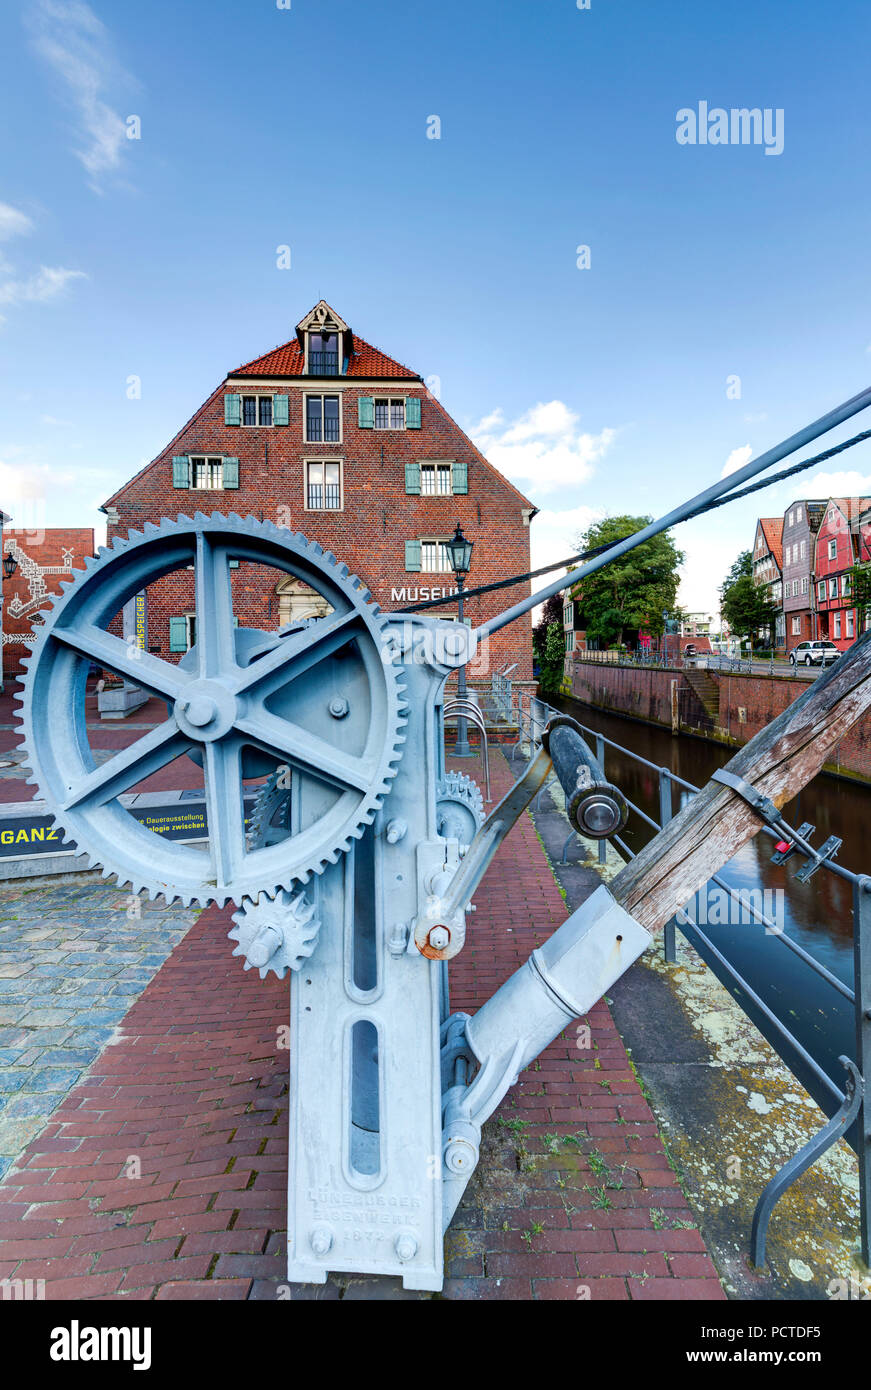 Museum Schwedenspeicher, old crane, Hanse harbour, Stade, Altes Land, Niederelbe, Lower Saxony, Northern Germany, Germany, Europe - Stock Image